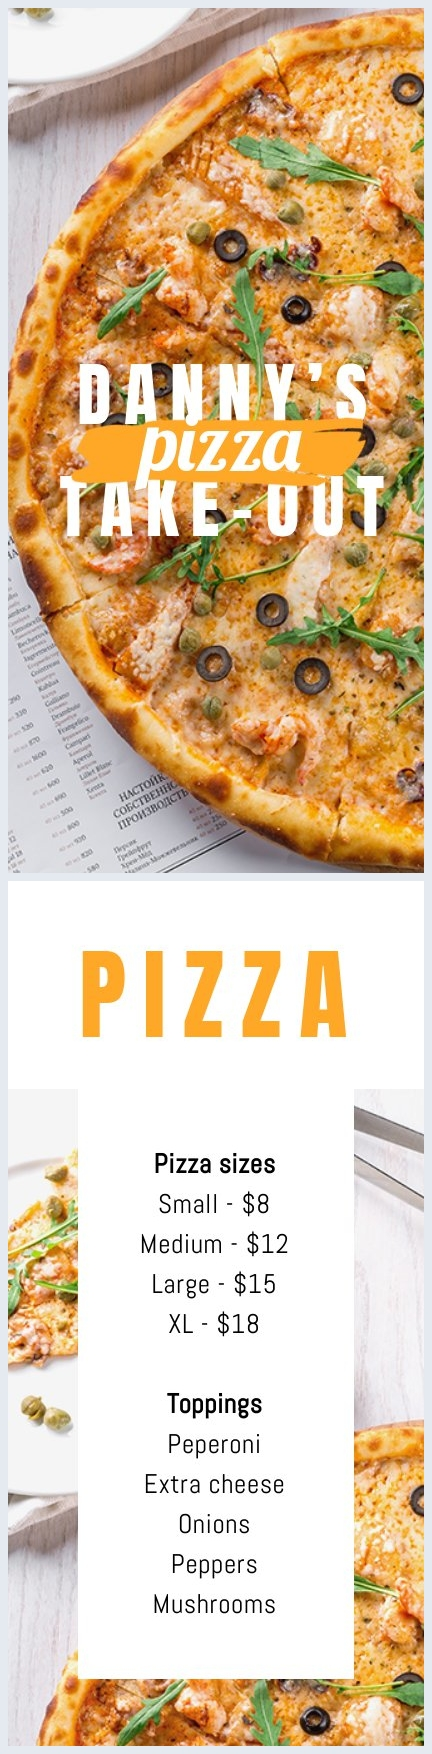 Take-Out Pizza Menu Template Design